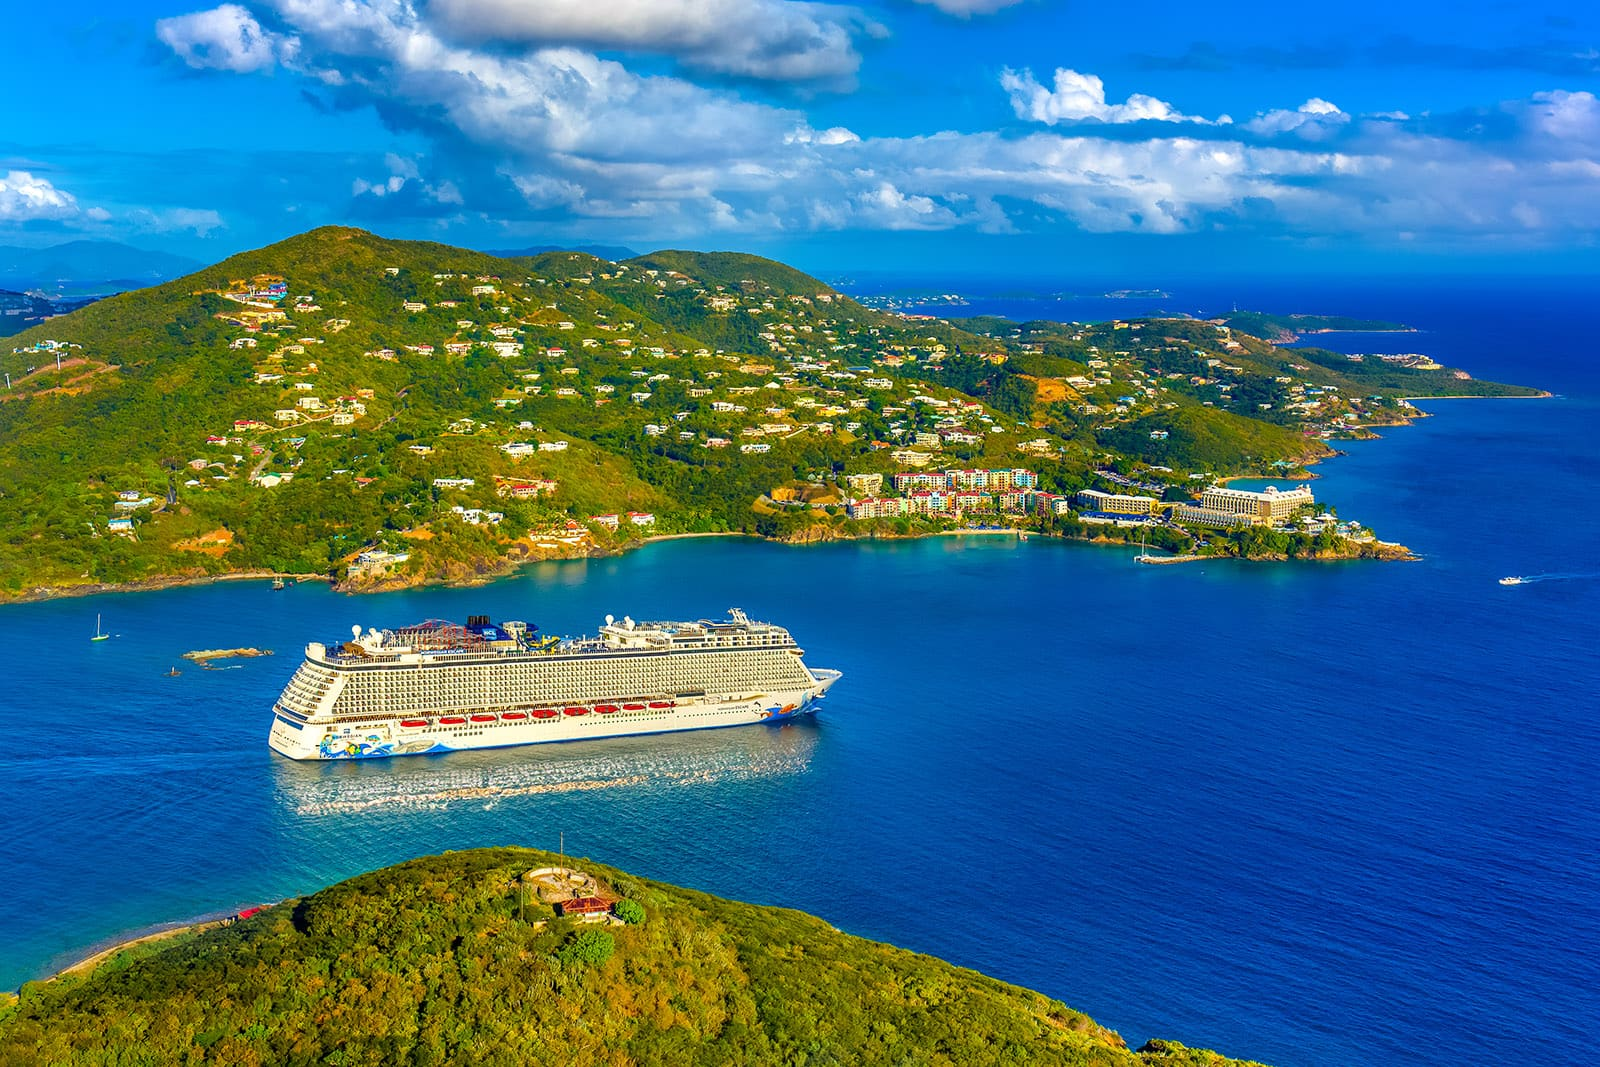 Explore Caribbean Cruises from New York with Norwegian